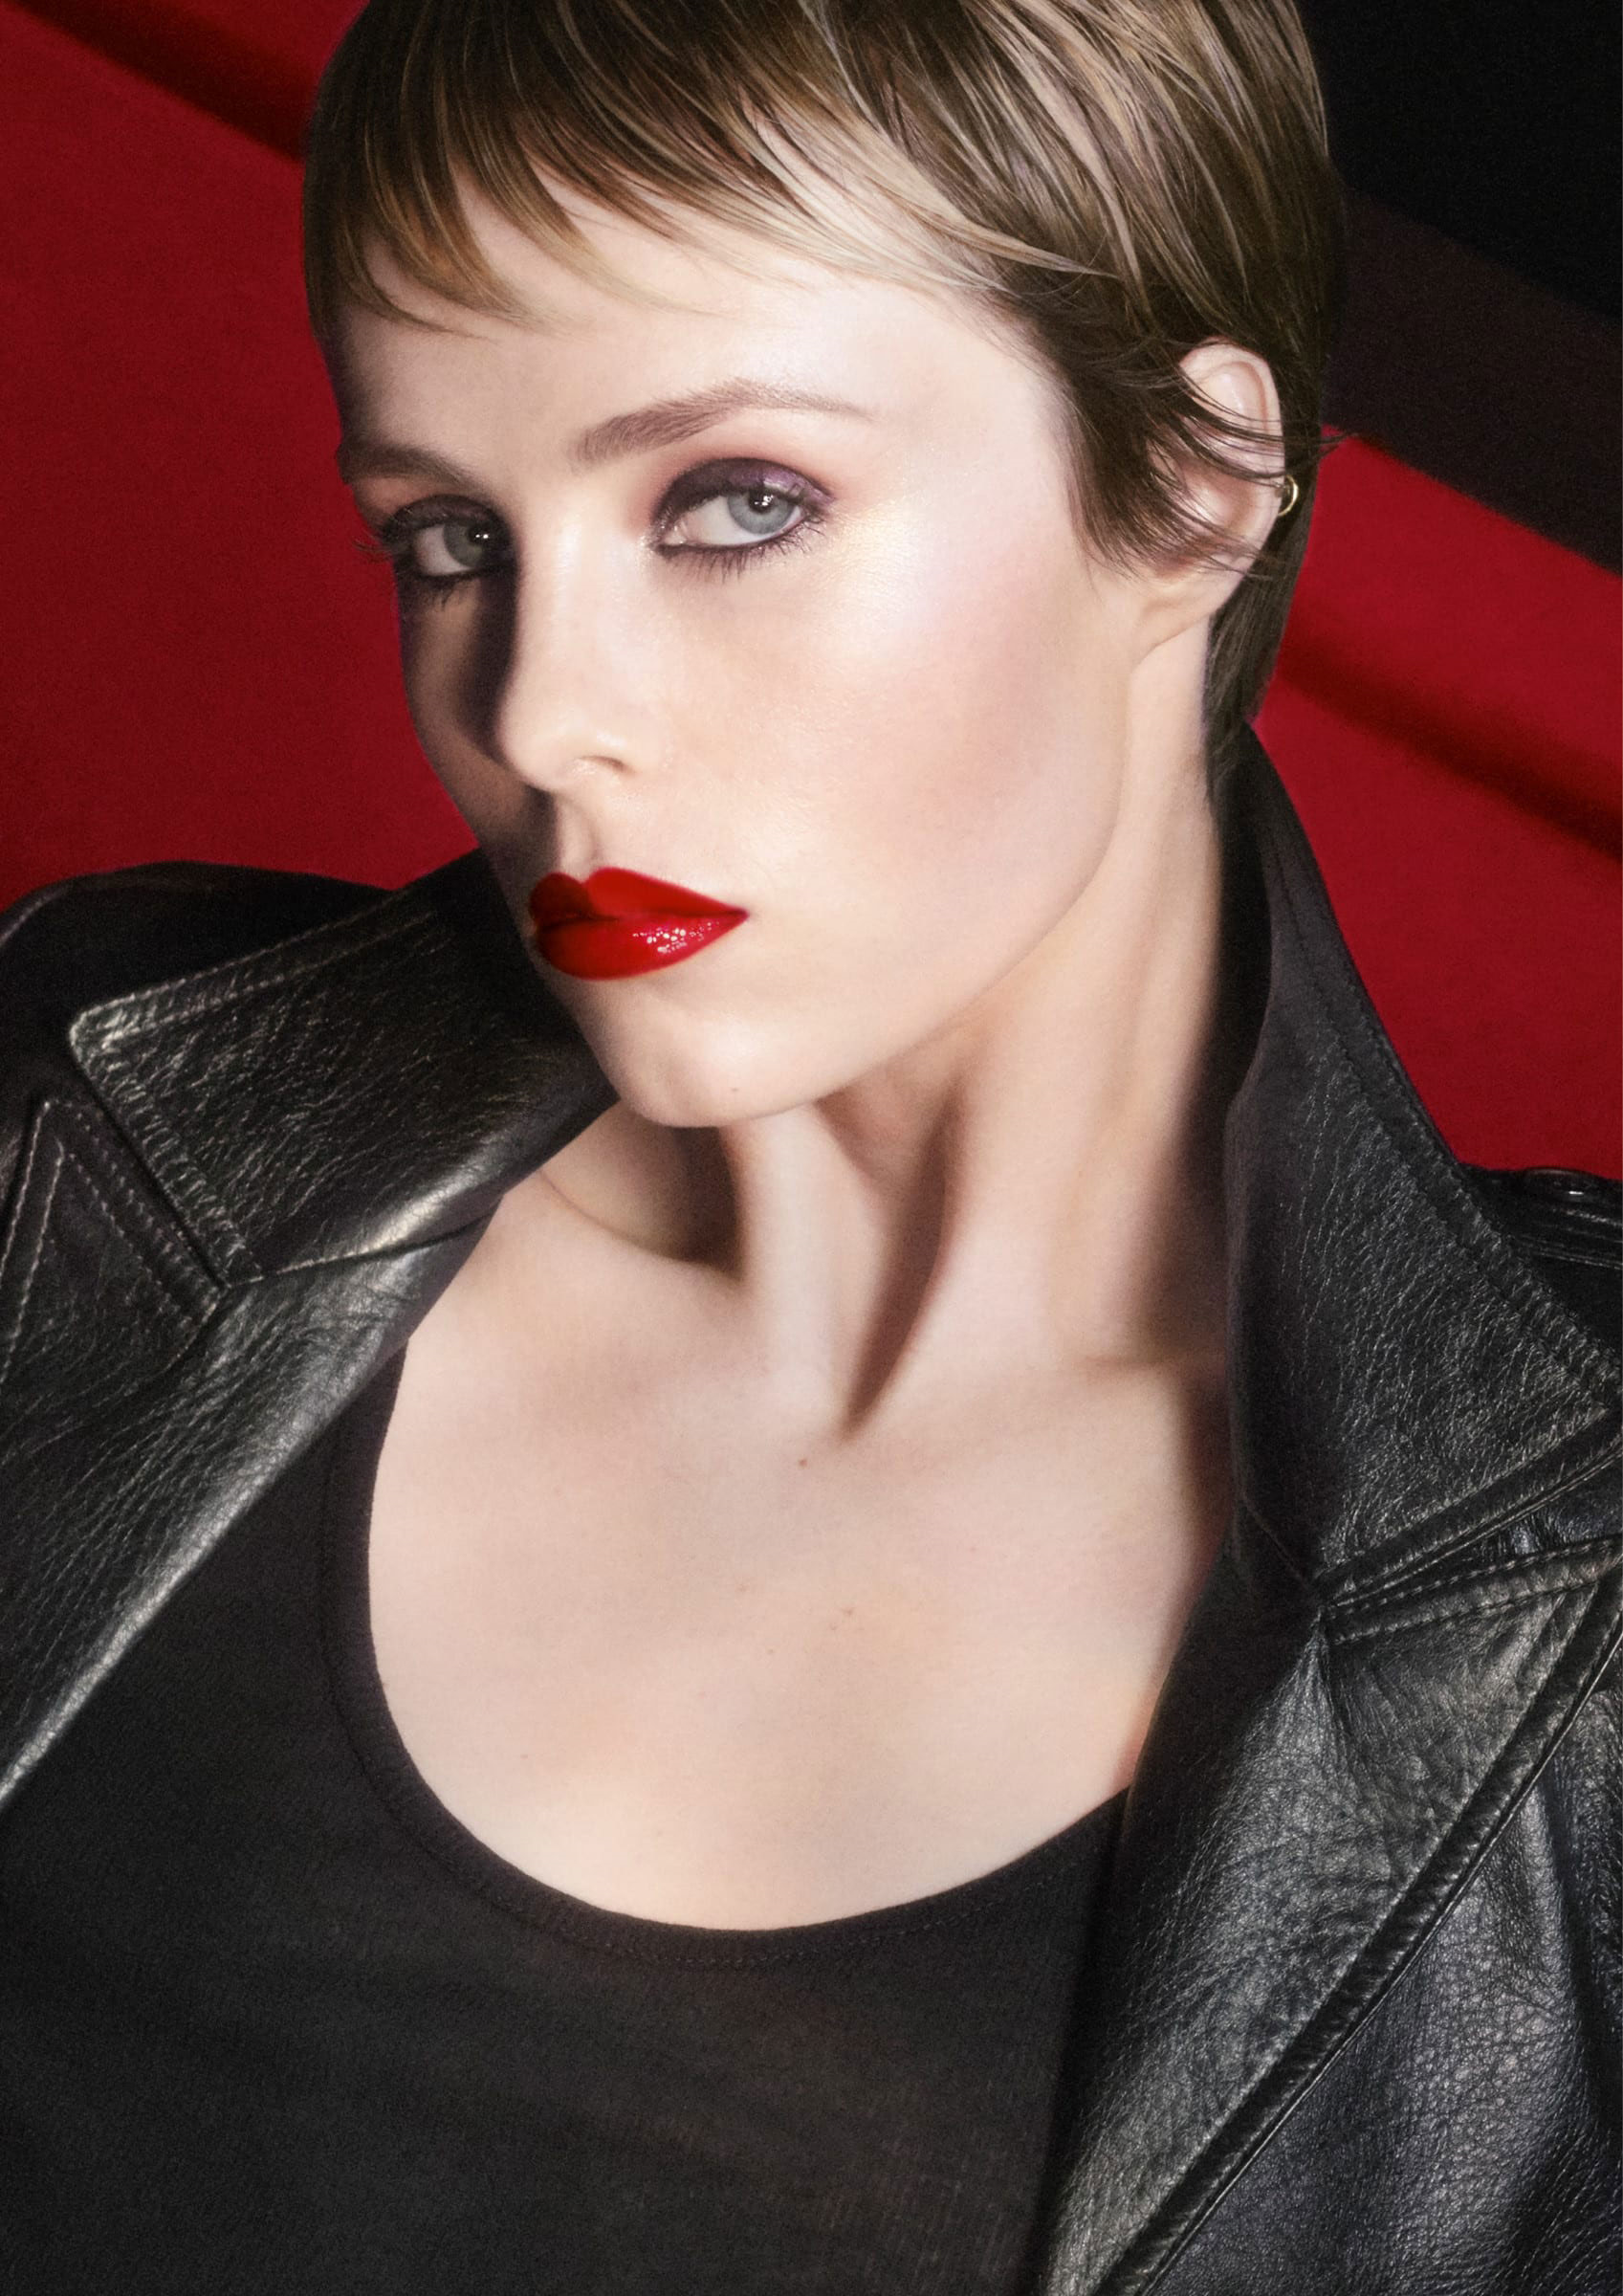 Yves-Saint-Laurent-Endanger-Me-Red-Lipstick-Collection-Edie-Campbell